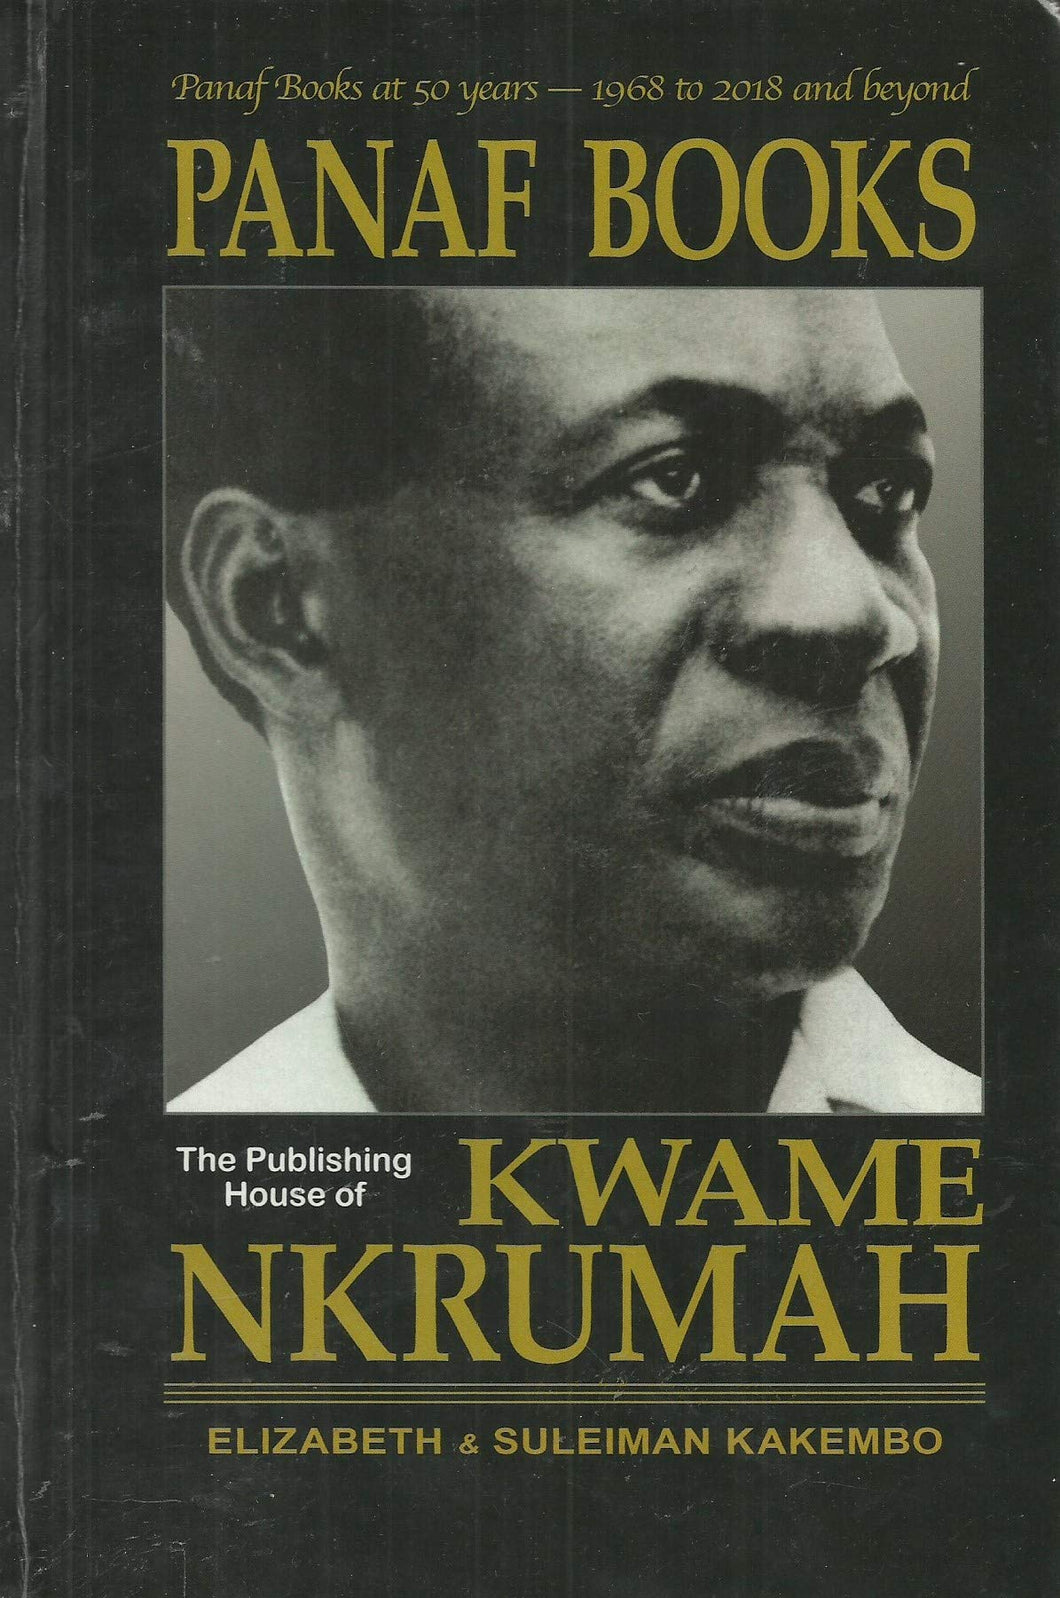 Panaf Books: The Publishing House of Kwame Nkrumah - Panaf Books at 50 Years - 1968 to 2018 and Beyond